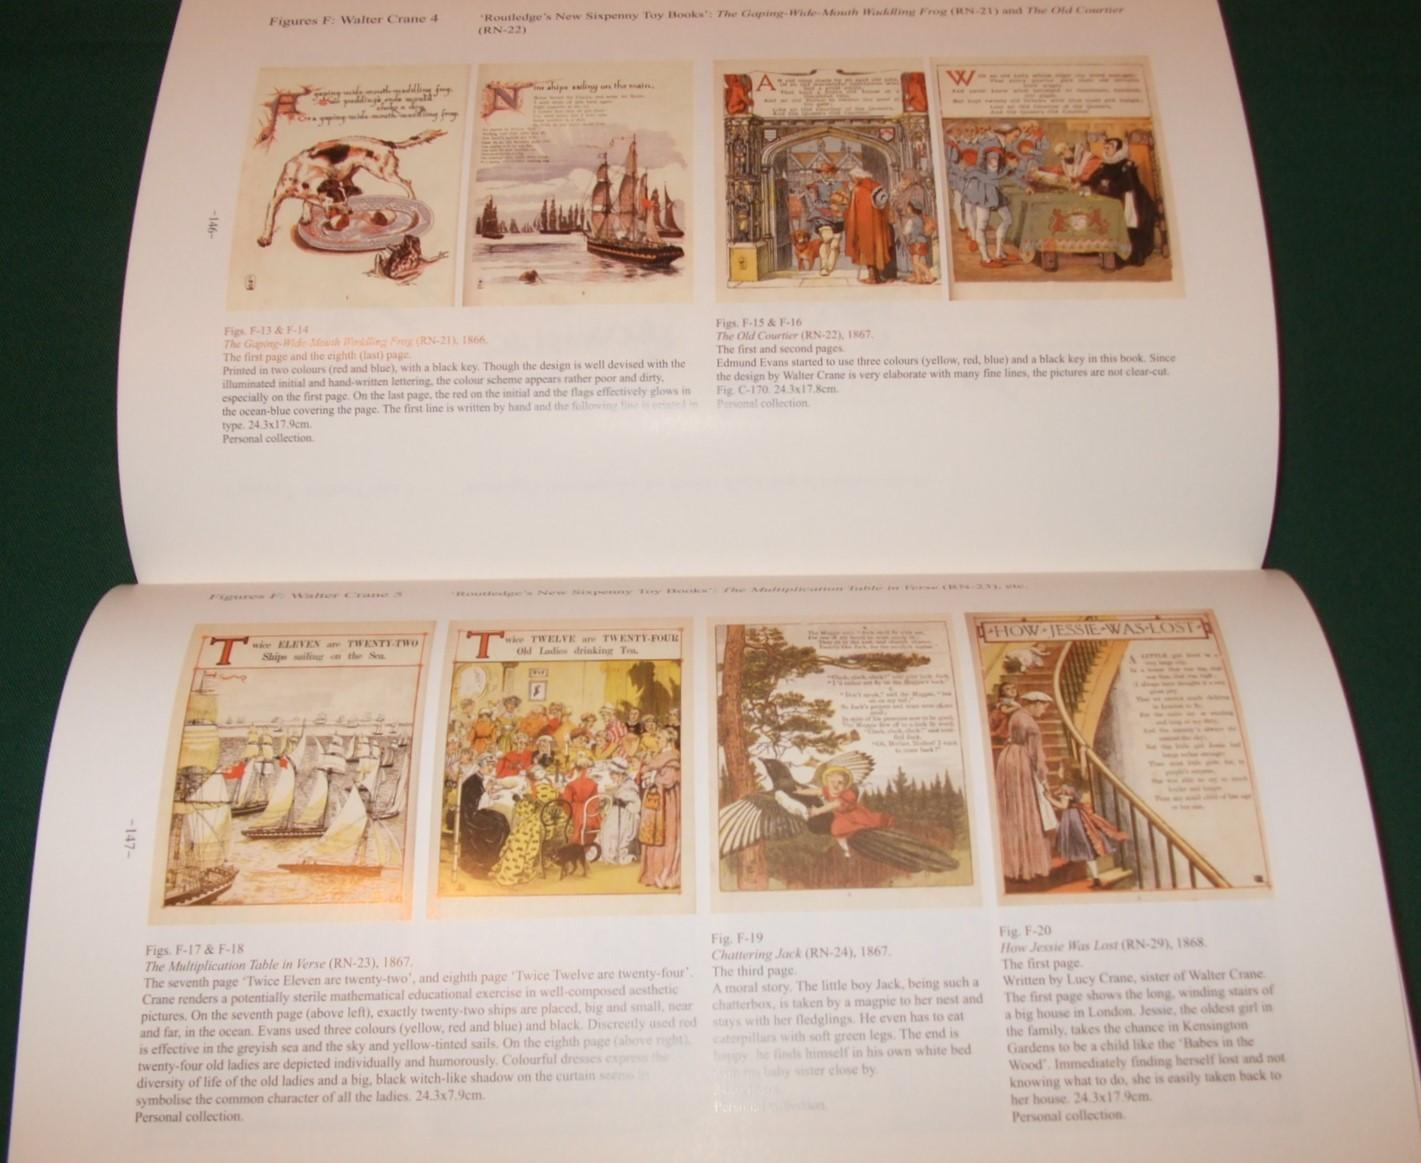 A History Of Victorian Popular Picture Books The Aesthetic